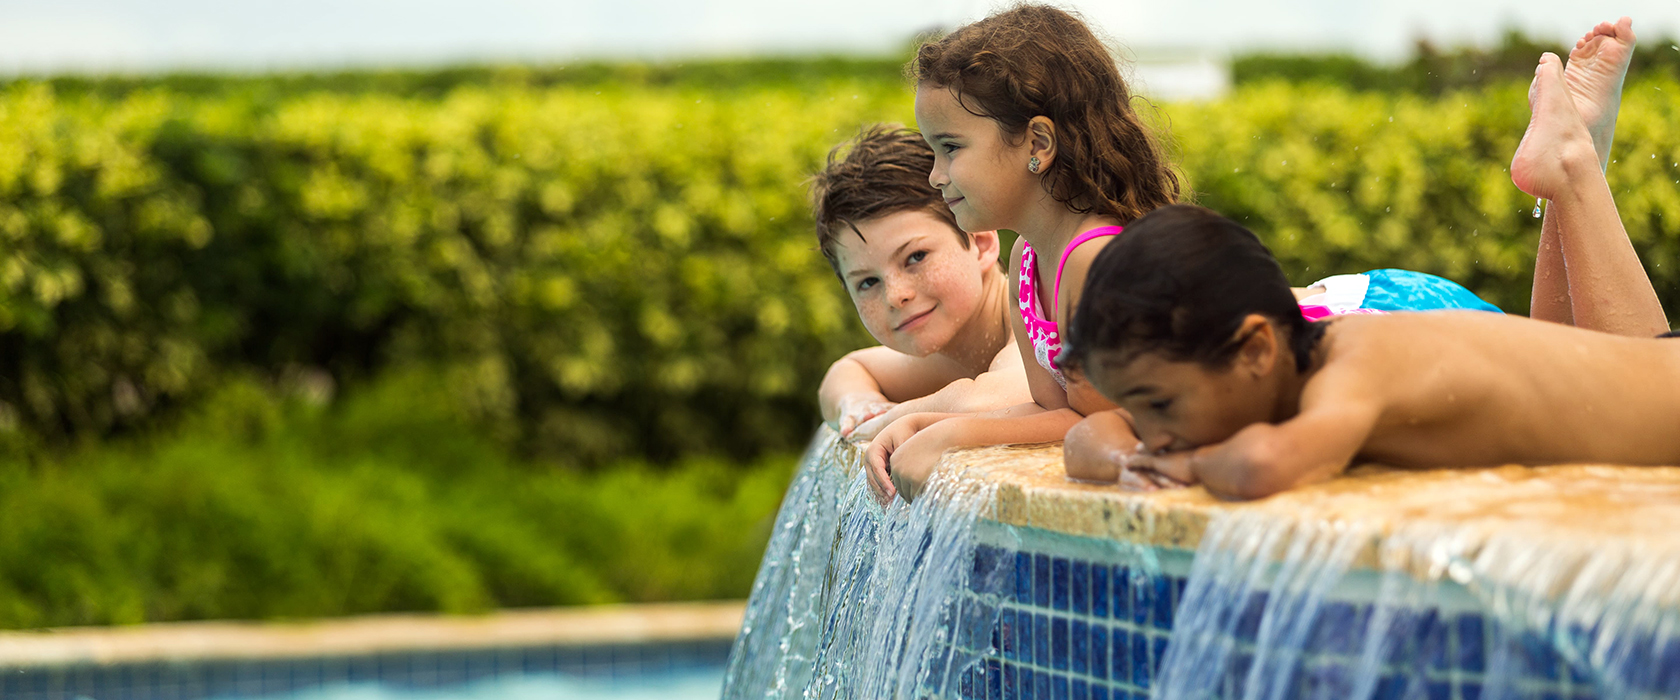 Family Fun at Caribe Hilton